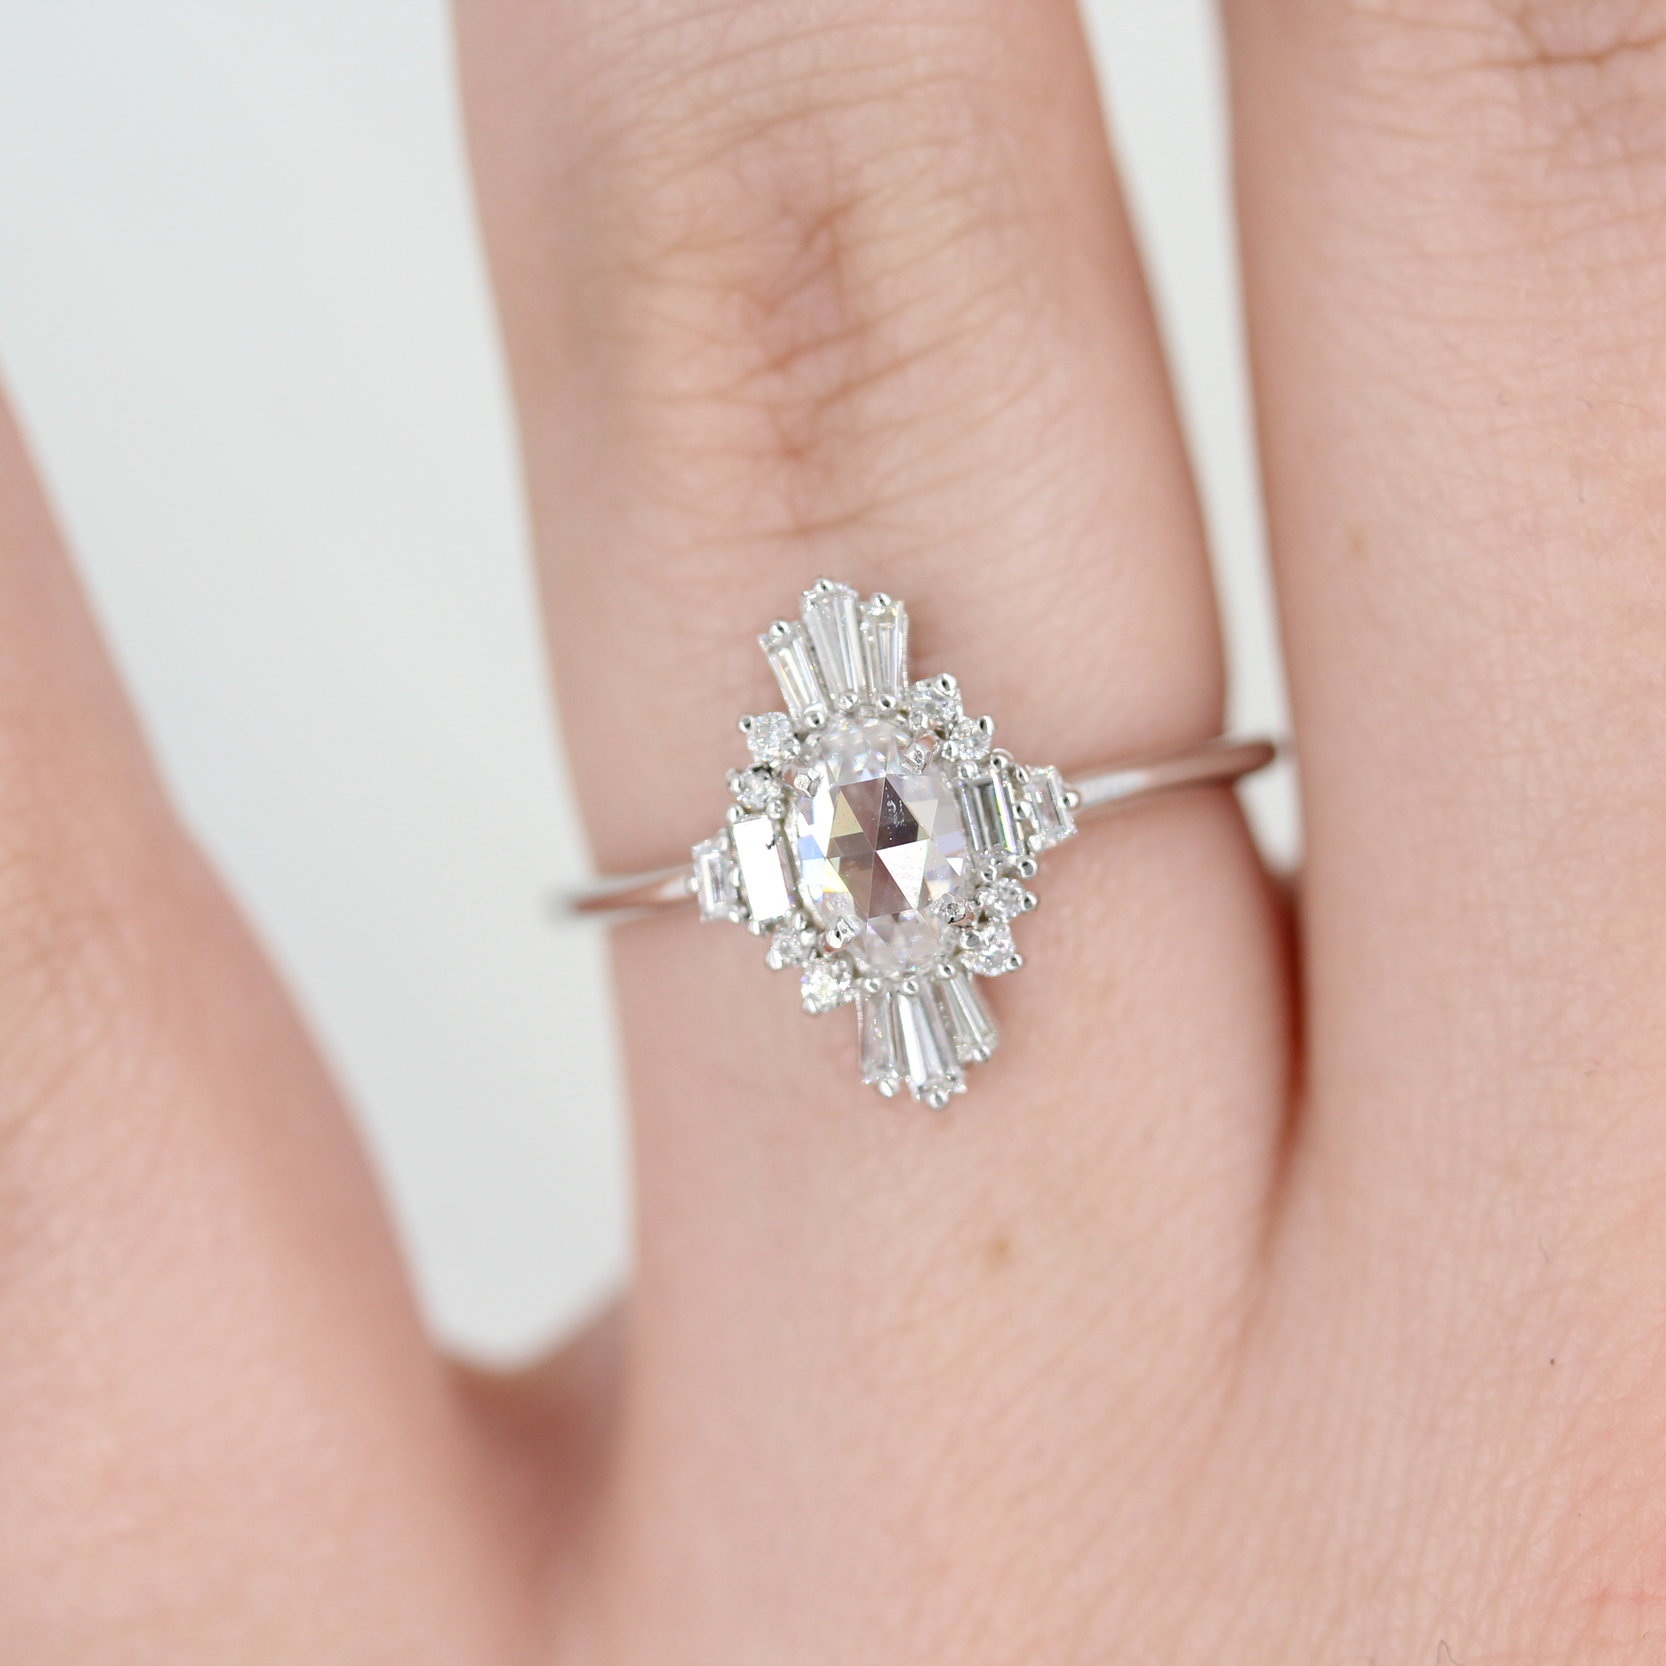 MINE-FREE DIAMONDS AND RECYCLED PRECIOUS METALS. - We specialize in grown diamonds and recycled precious metals, so we can all tread lighter on the earth and you can enjoy your jewelry without worry.